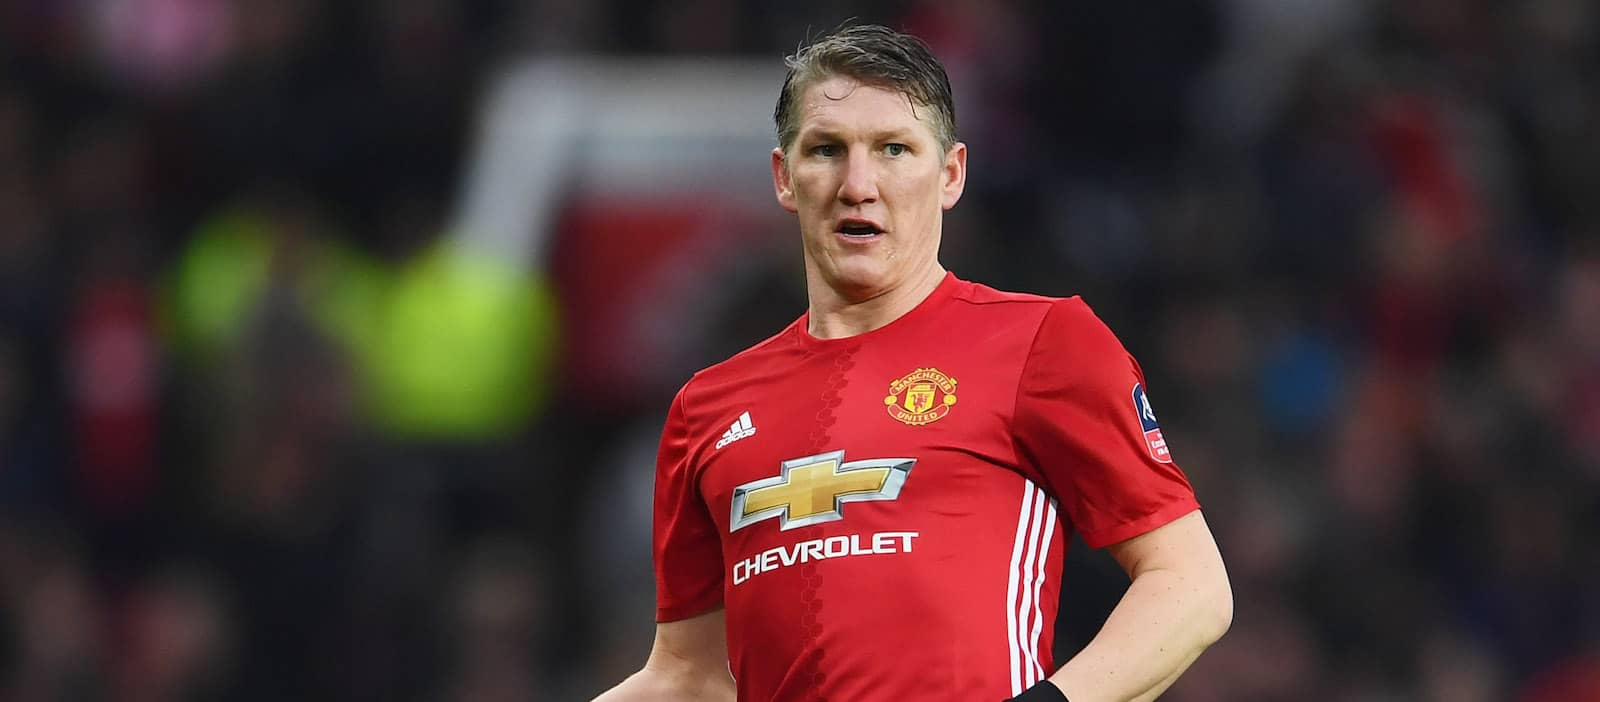 Paul Scholes: Jose Mourinho should play Bastian Schweinsteiger at Man United